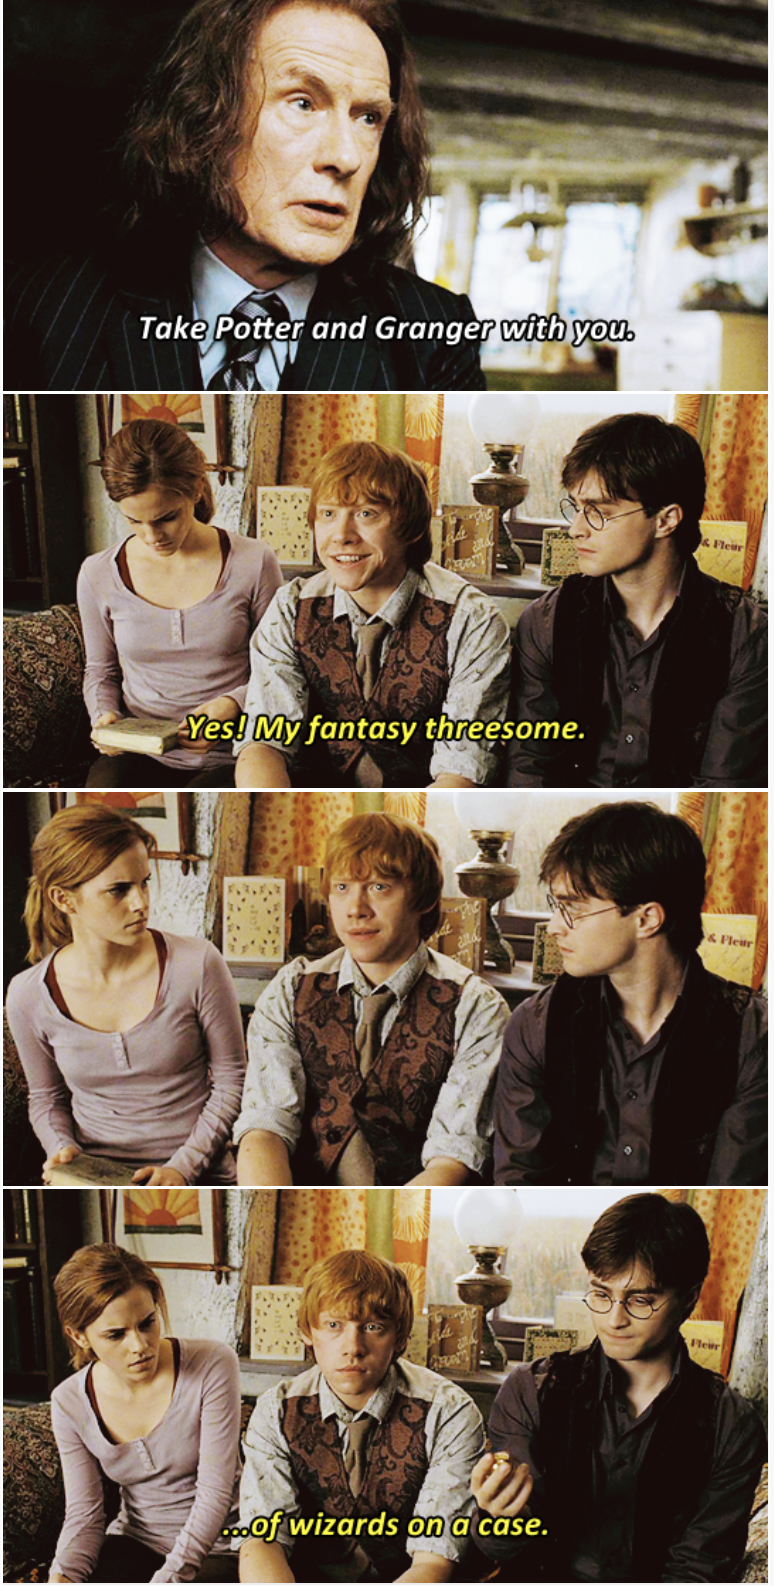 Collage - Take Potter and Granger with you. &Fleur Yes! My fantasy threesome. & Fleur Fleur oof wizards on a case.